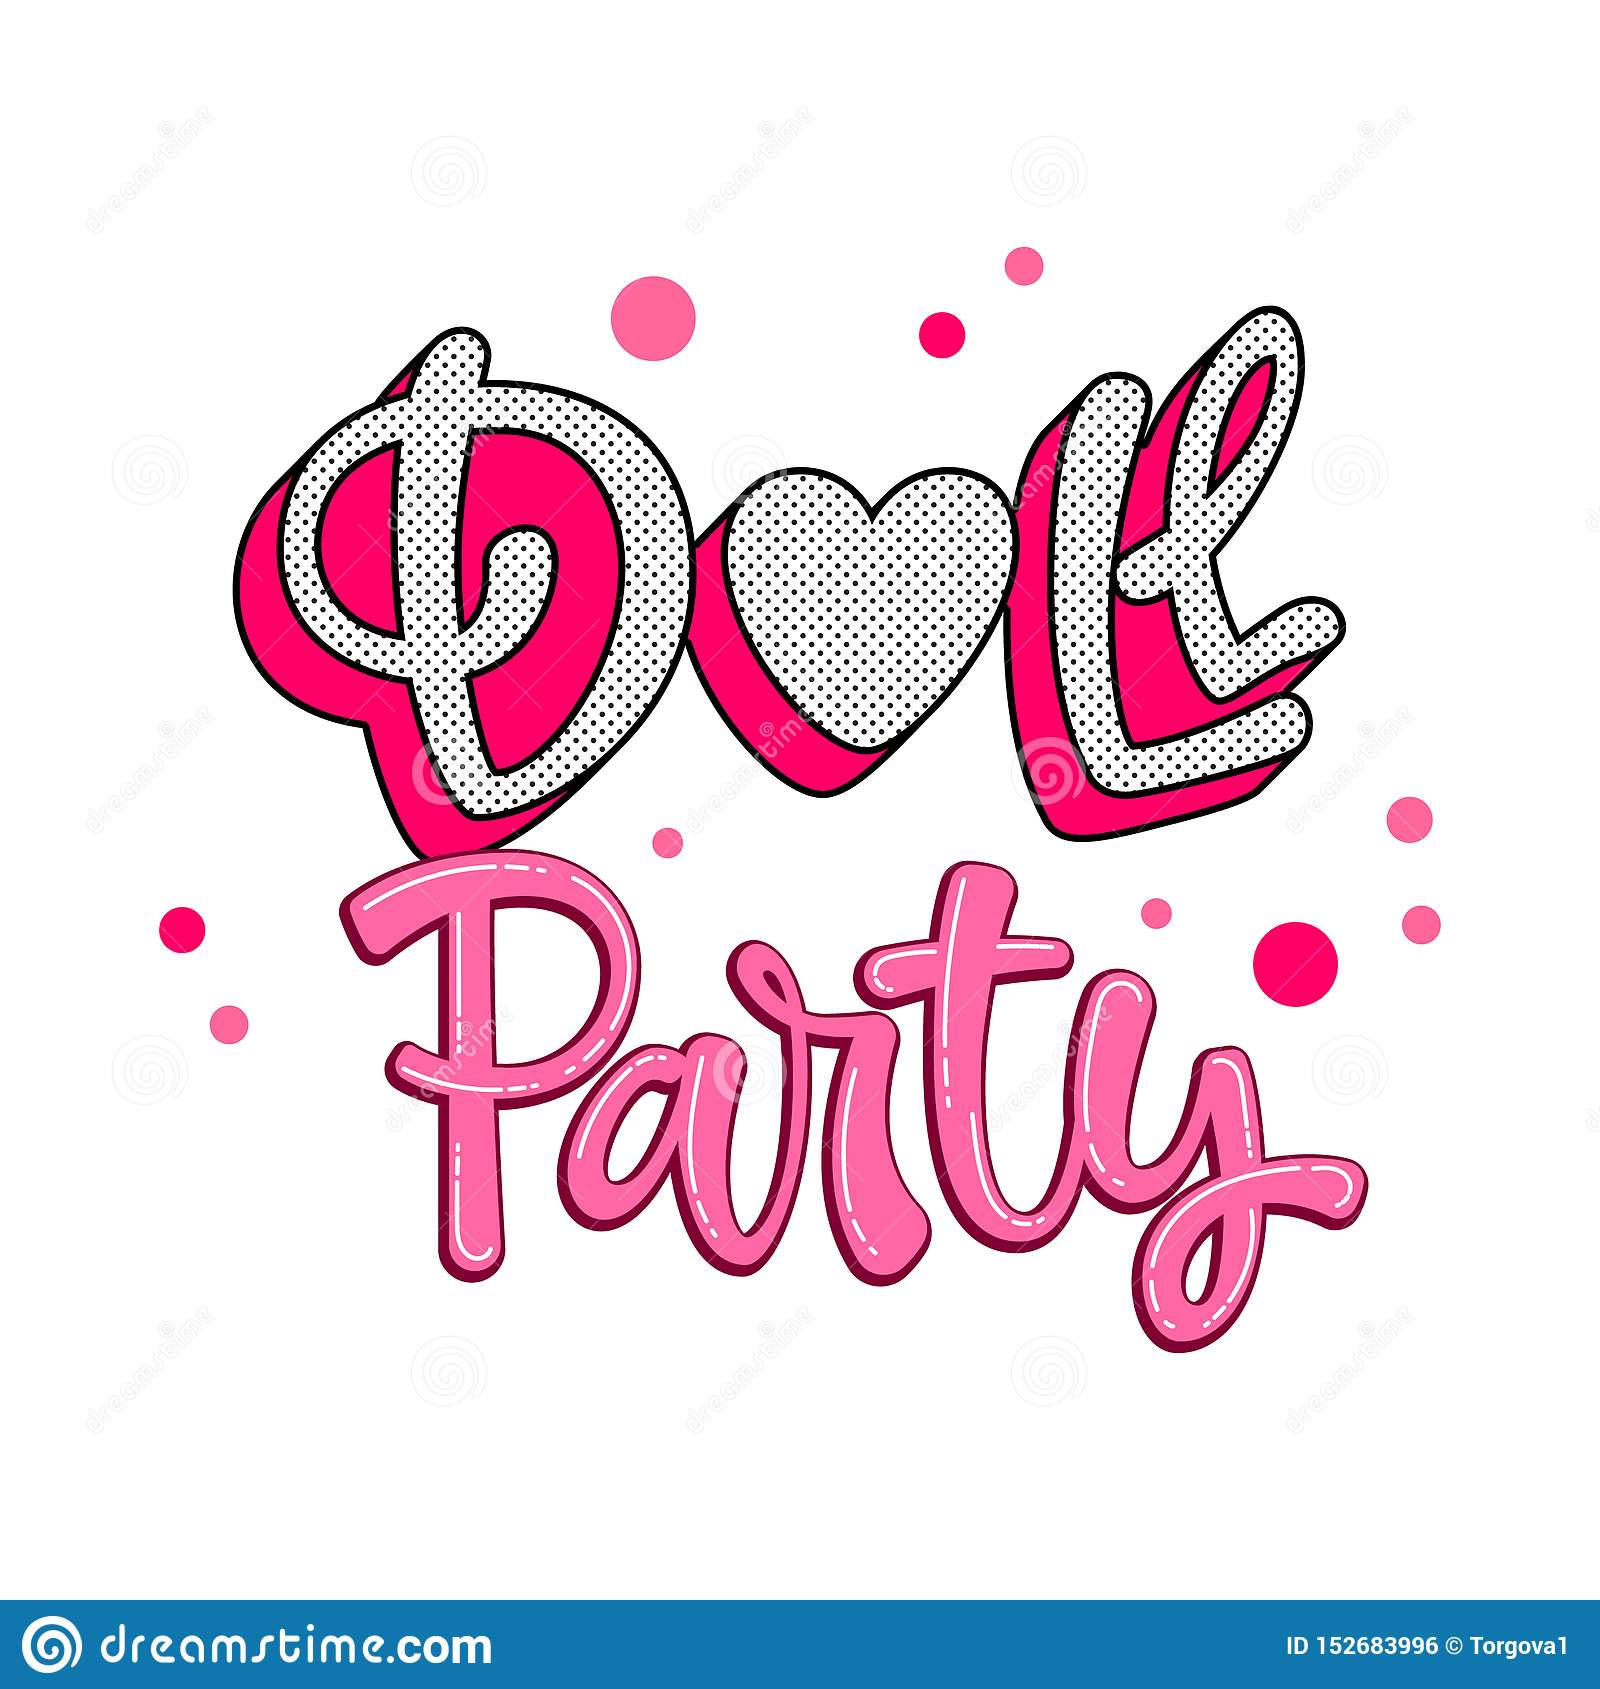 Doll Party Quote Lol Dolls Theme Girl Hand Drawn Lettering